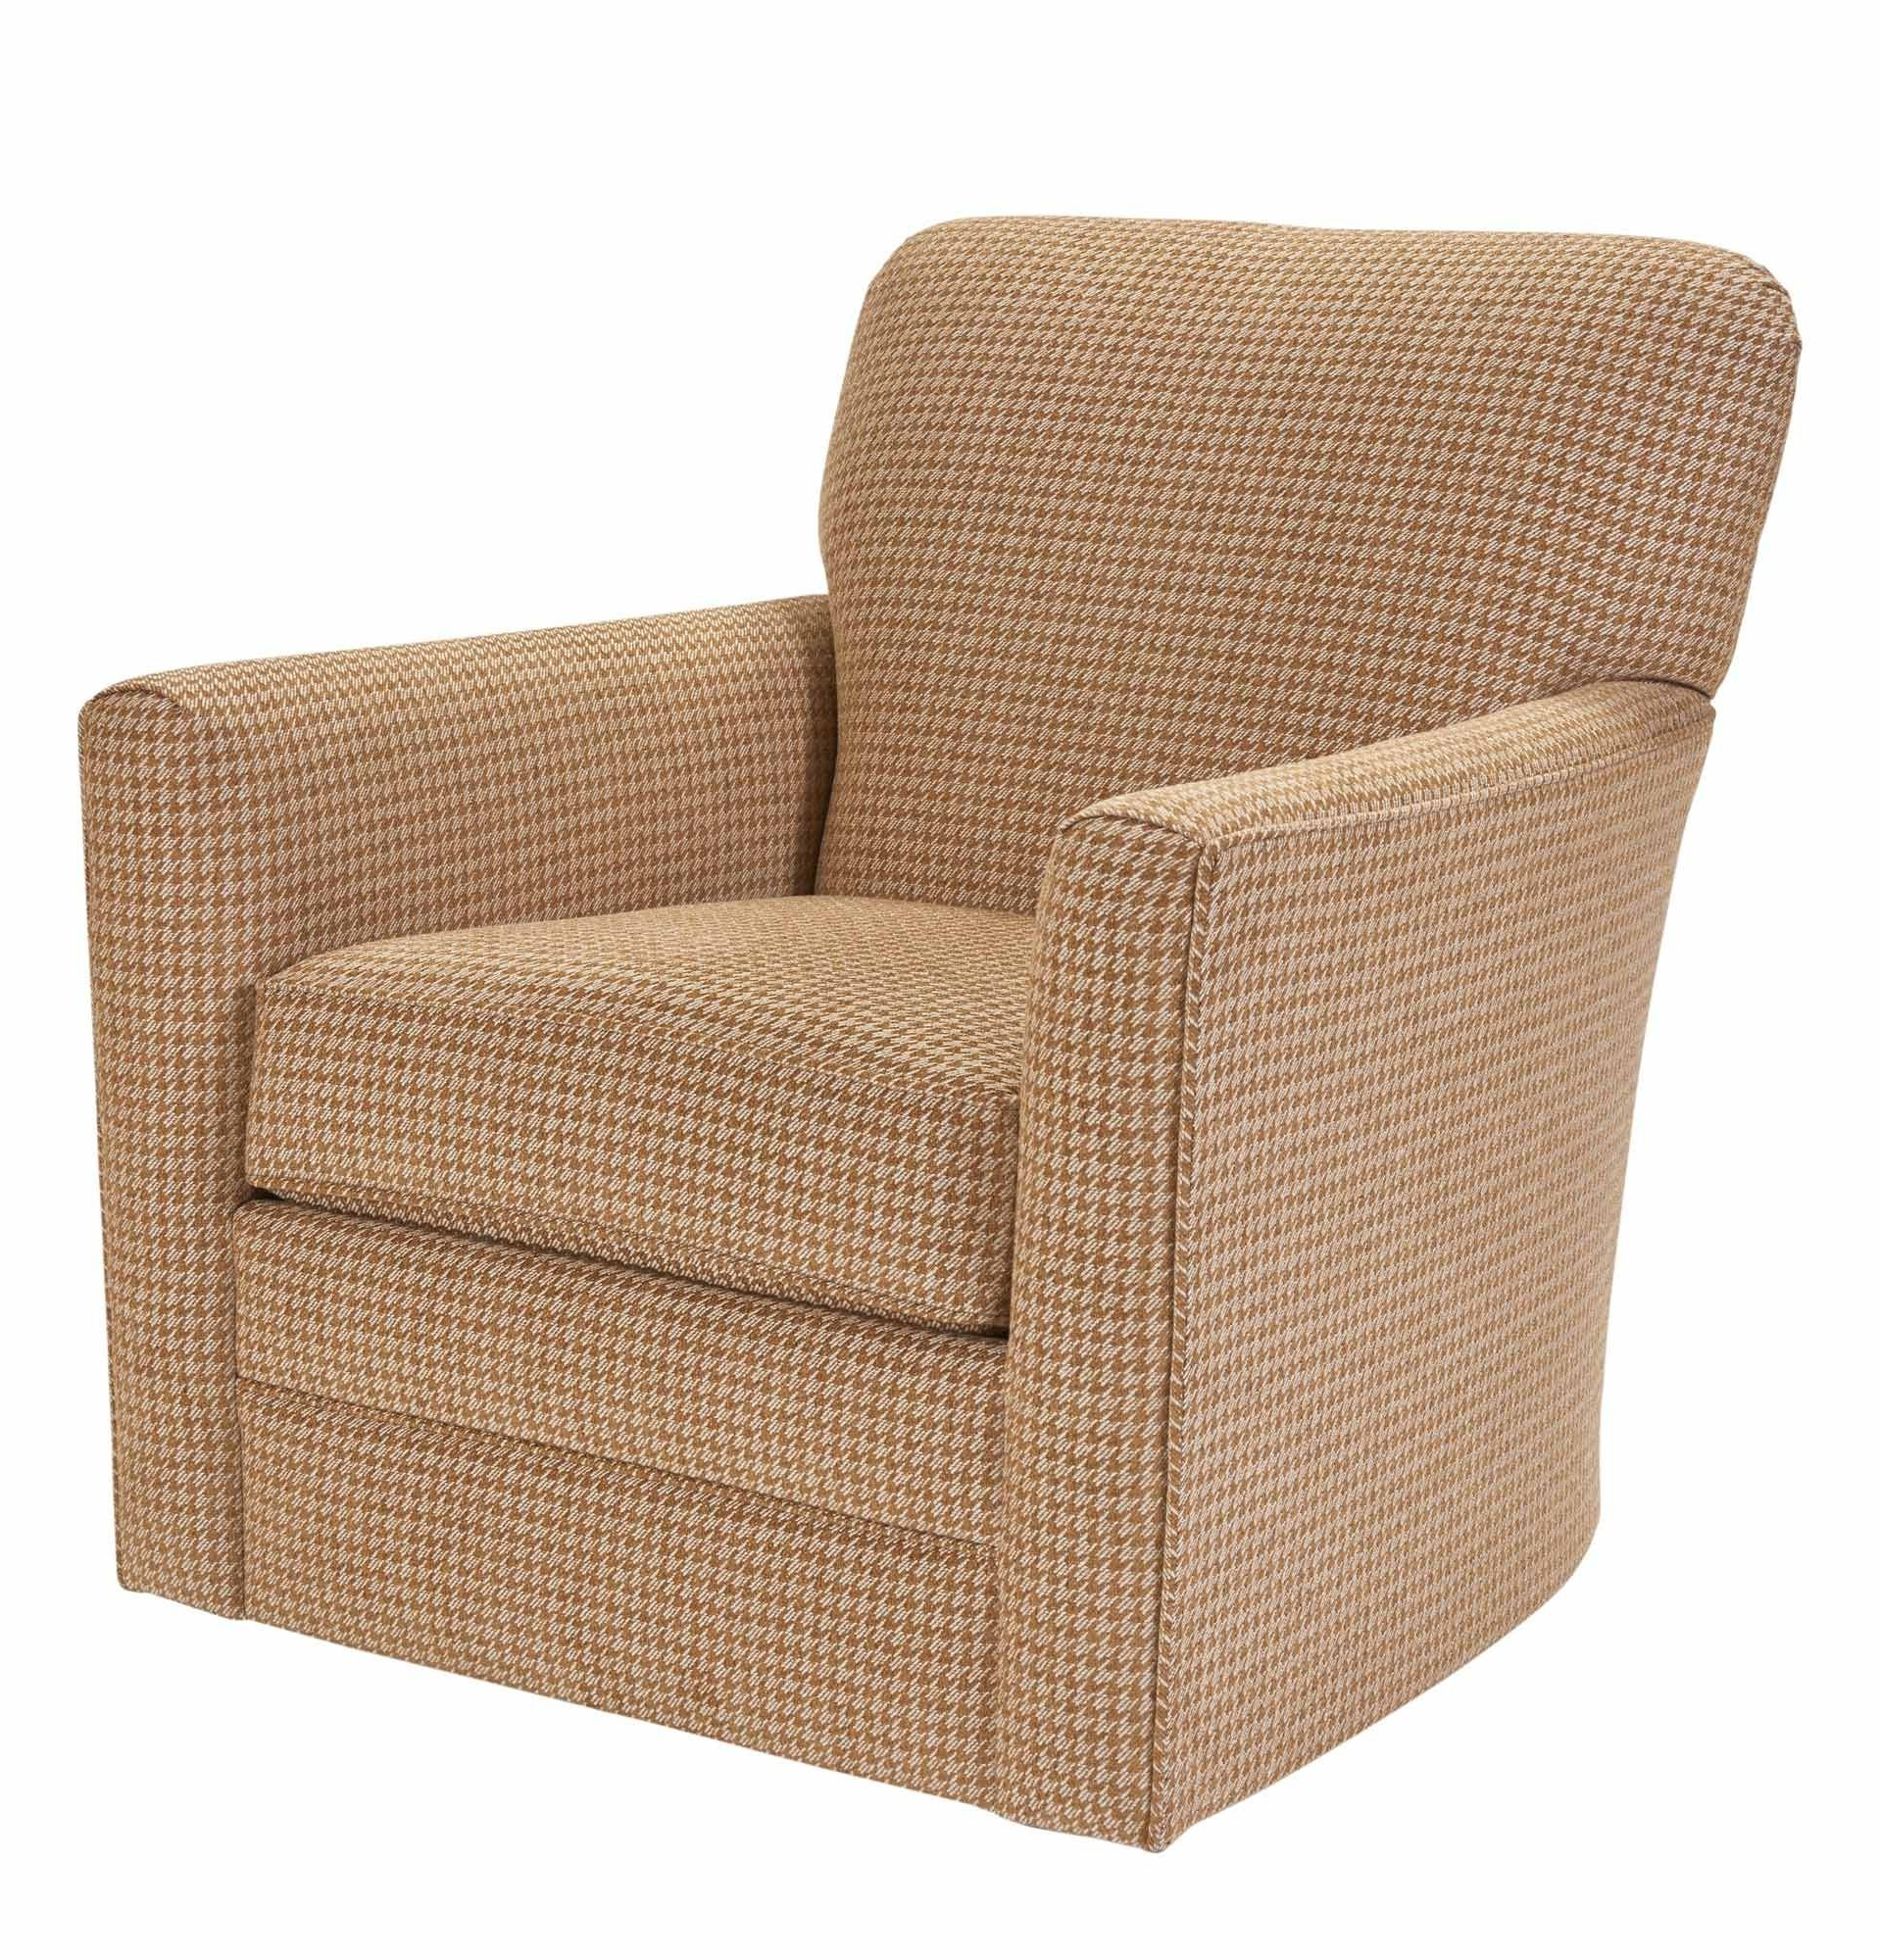 Widely Used Riverside Drive Barrel Chair And Ottoman Sets With Becks Swivel Chair (View 15 of 20)